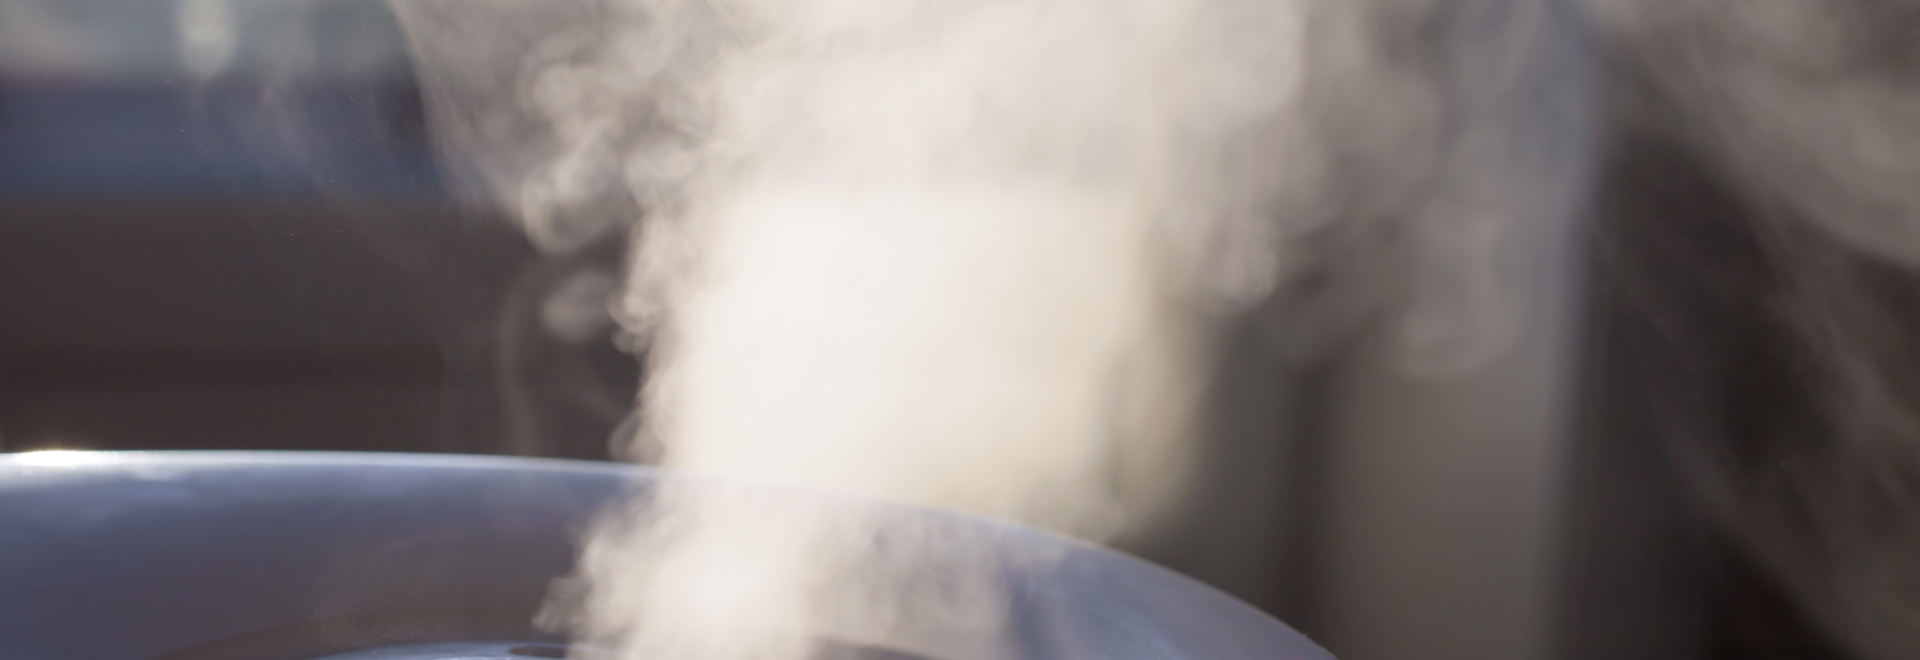 Humidifier Emitting Water Vapor Into Air